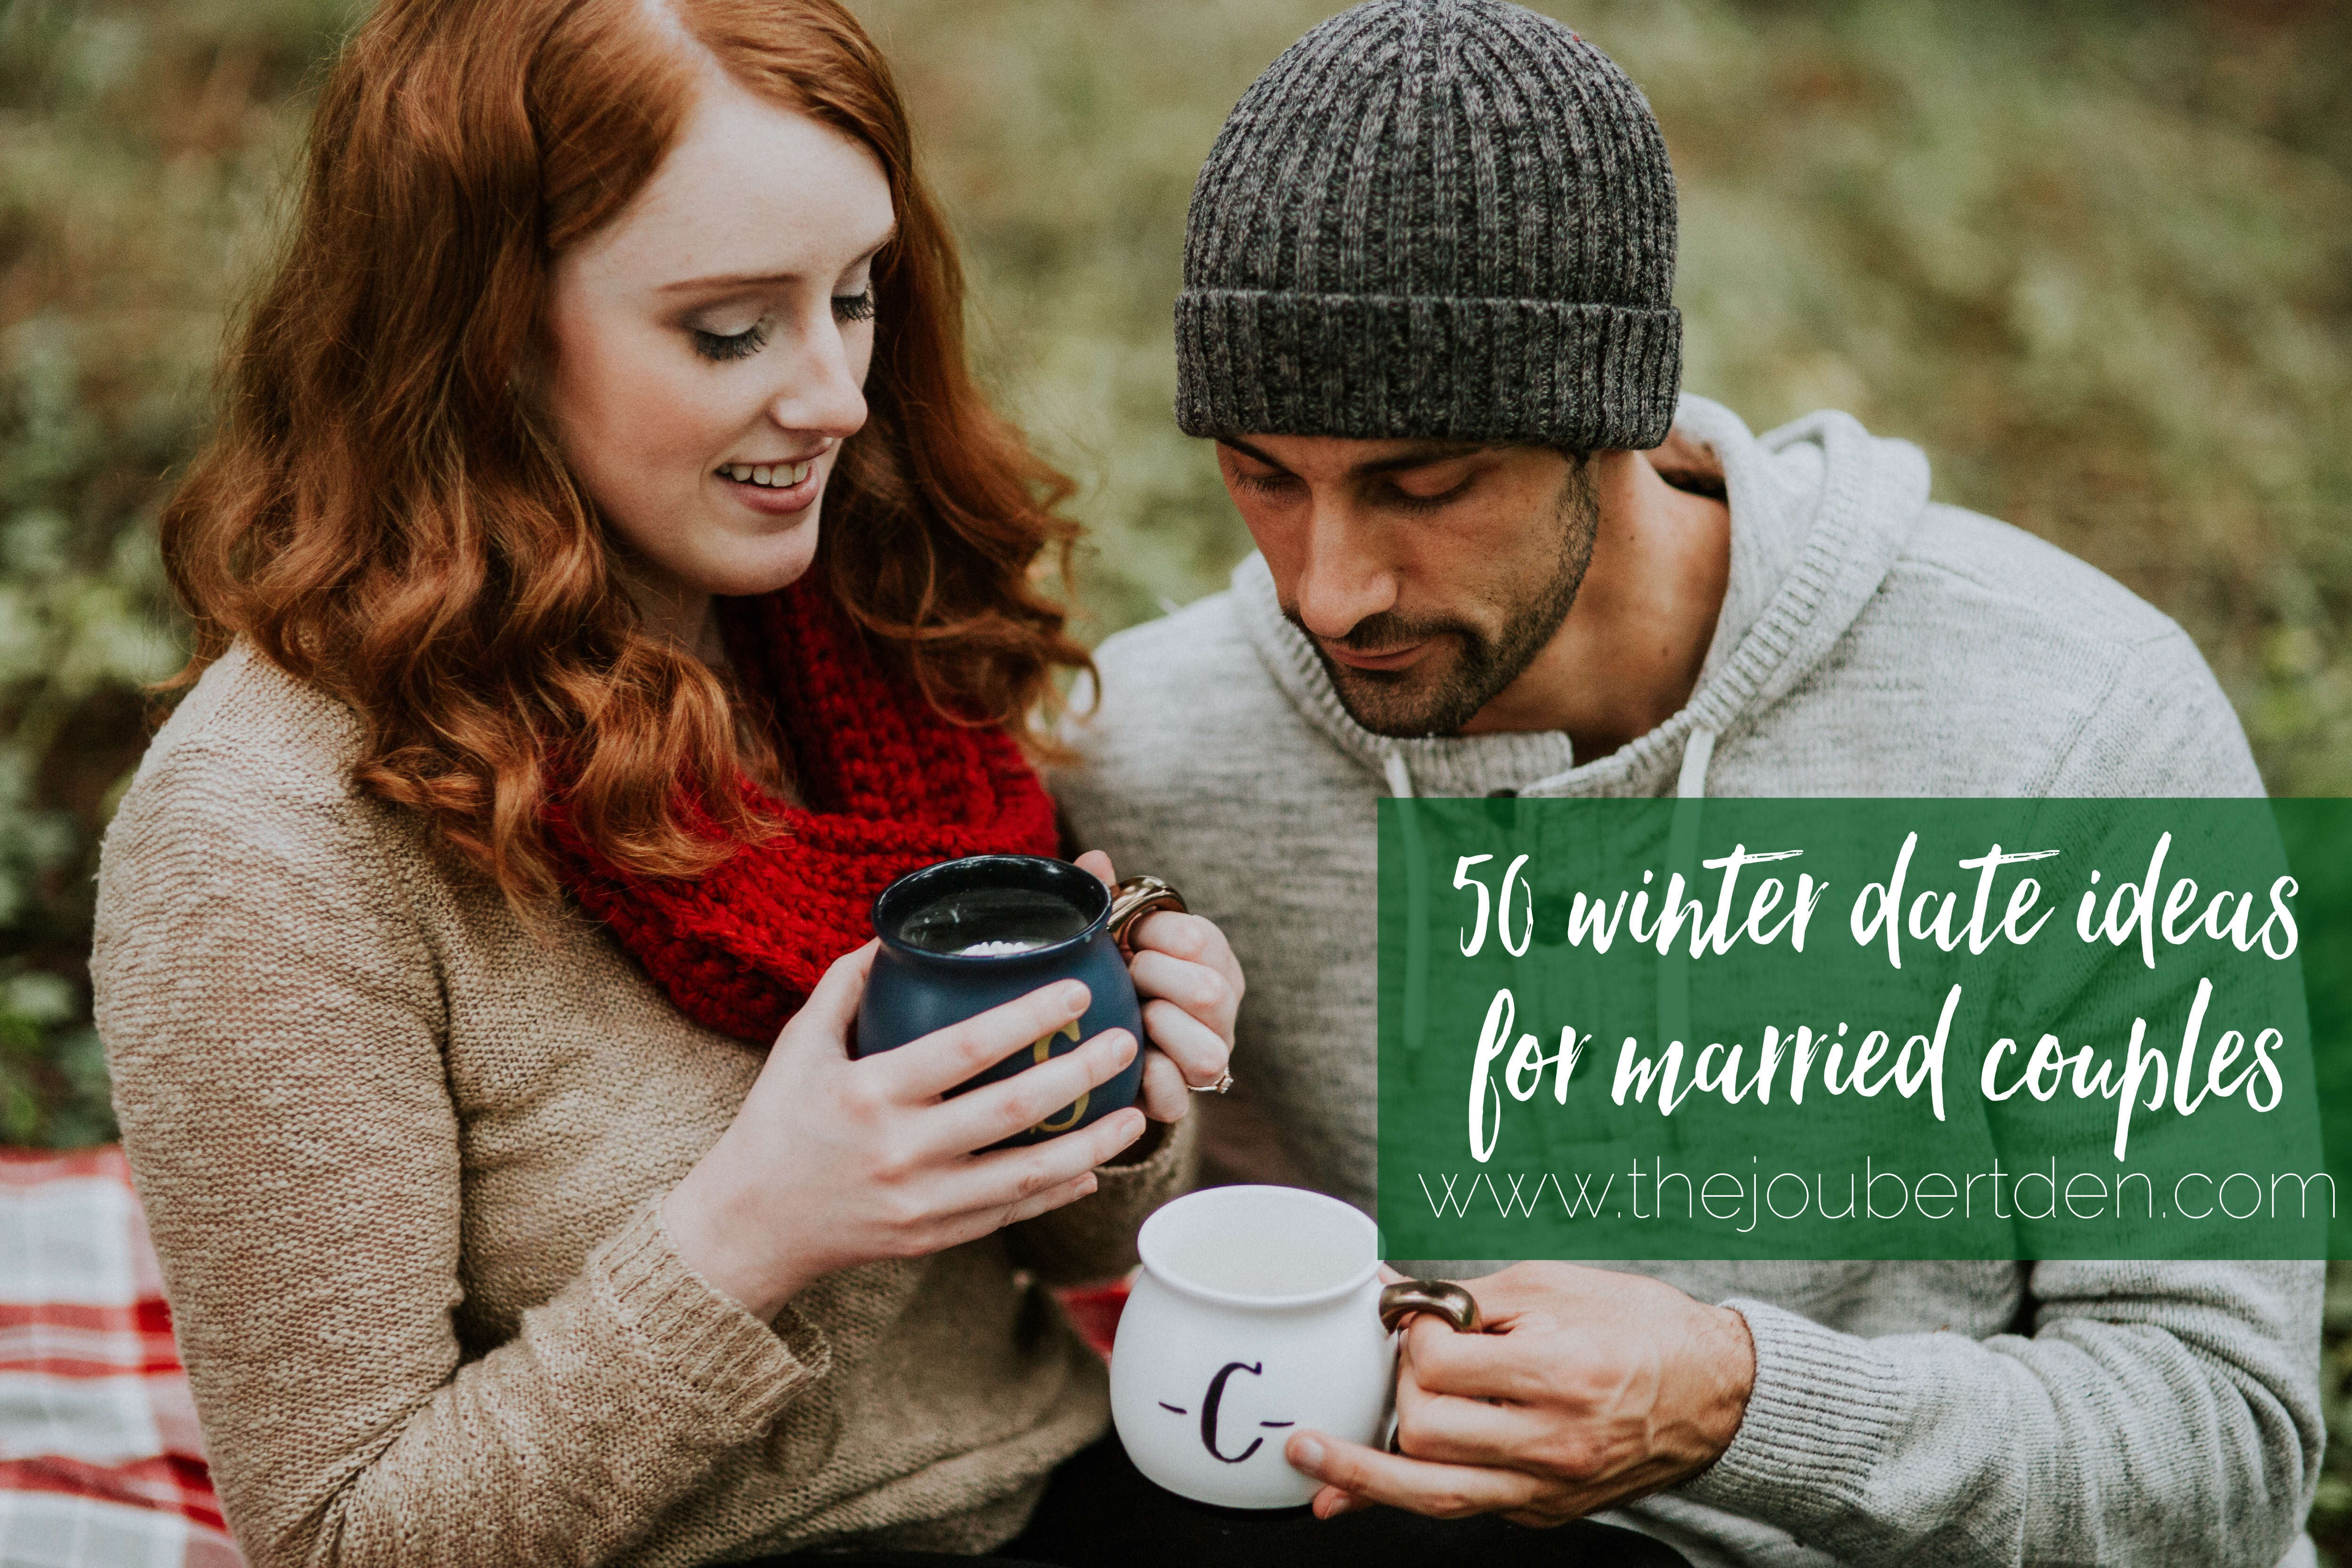 50 winter & Christmas date ideas for married couples - The